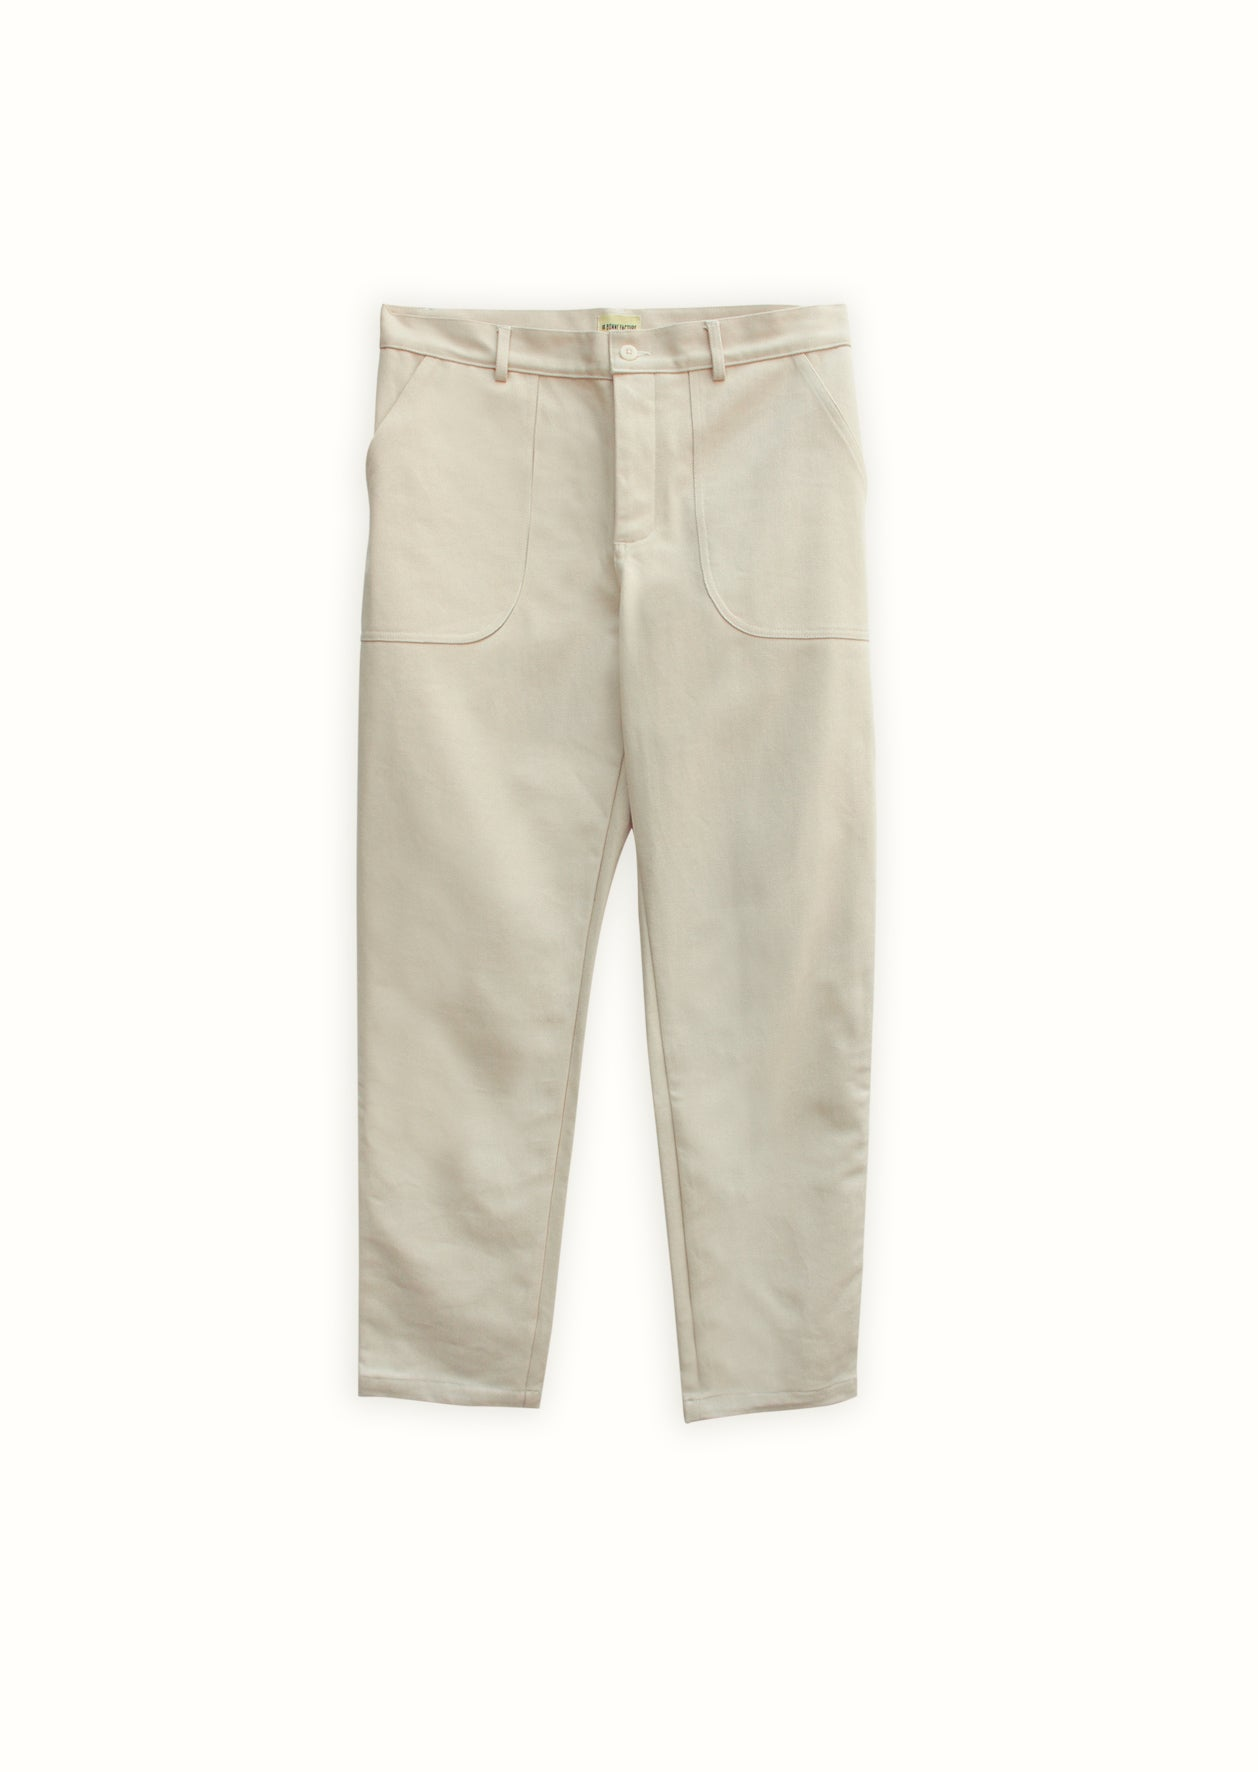 Painter's trousers - Heavy cotton twill - Beige